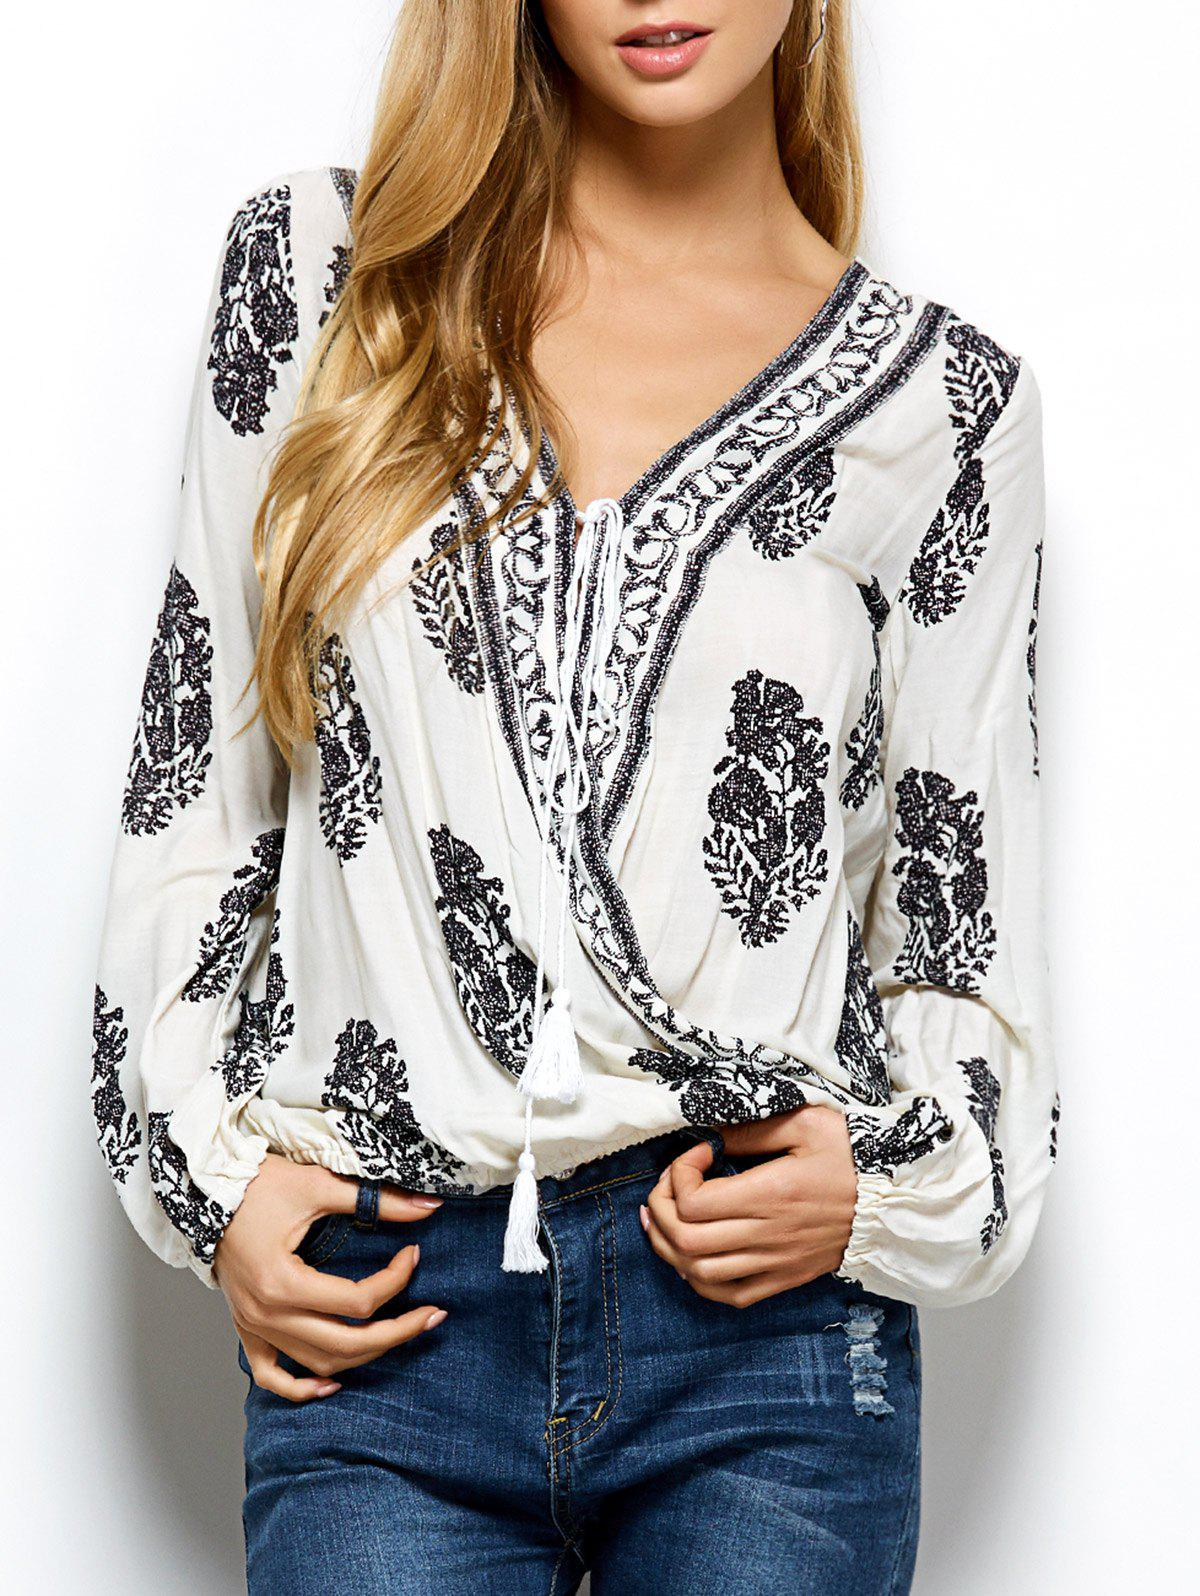 Retro Print Wrap V Neck Blouse - WHITE M